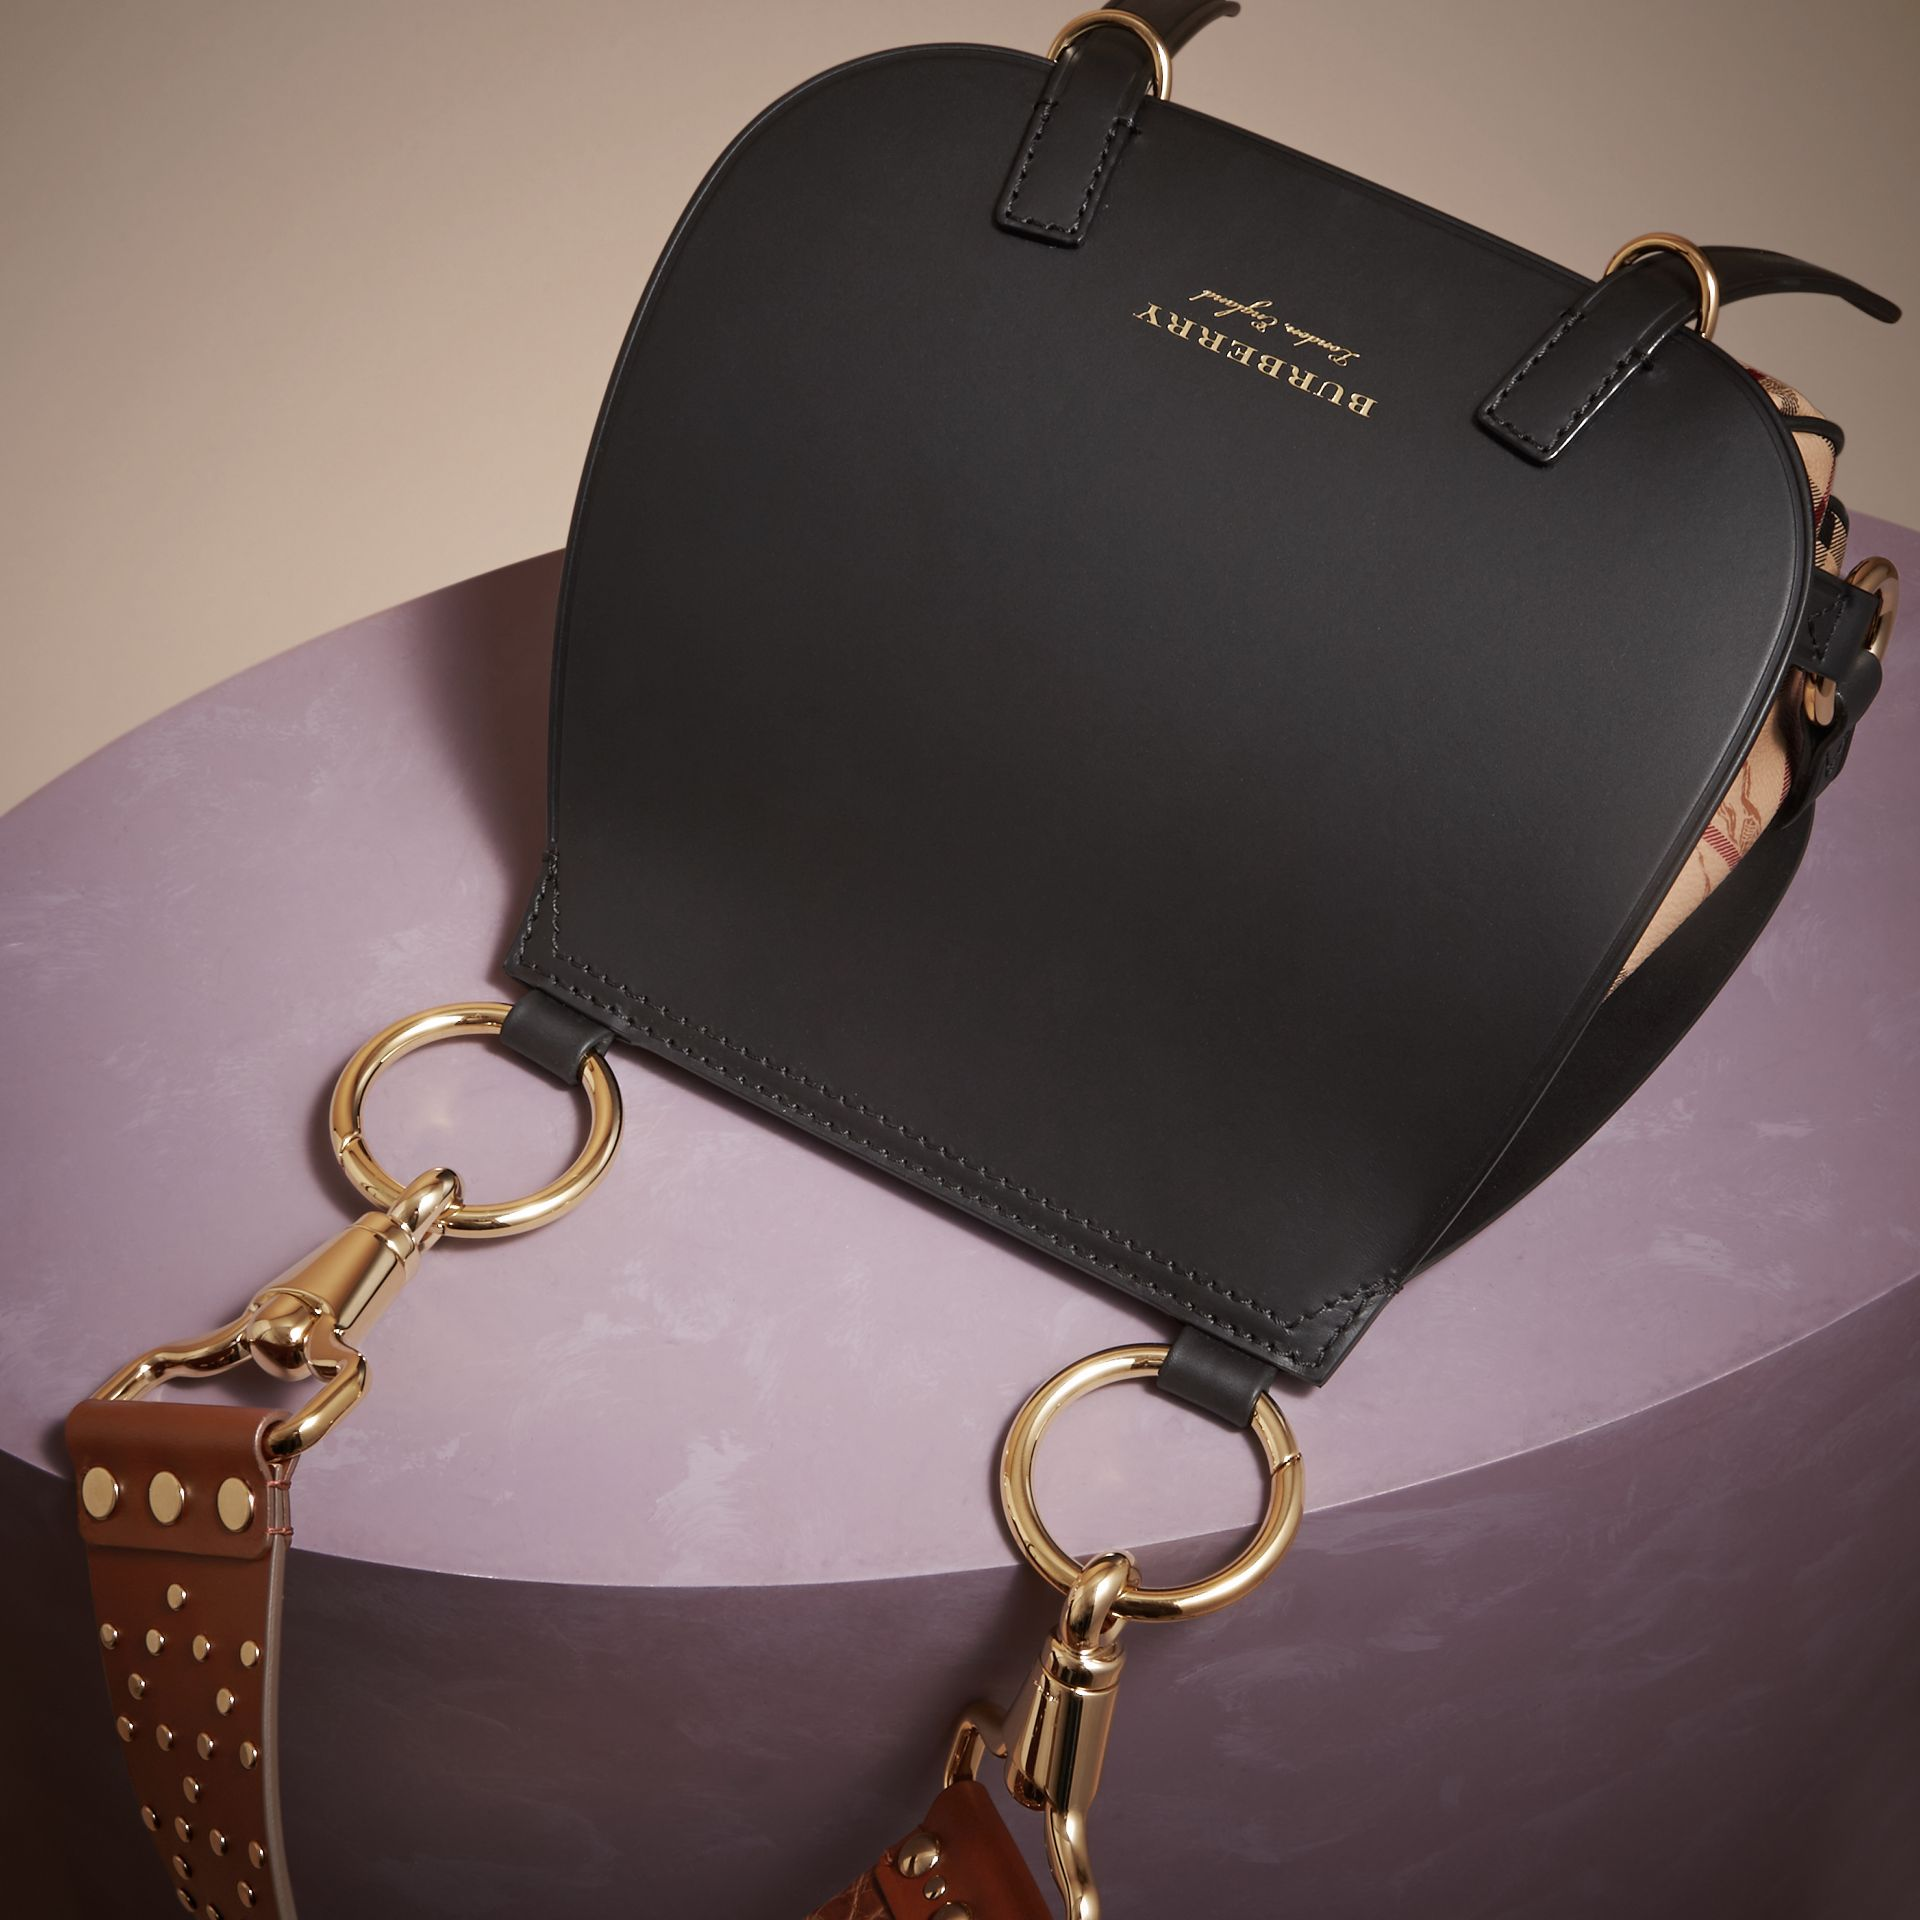 Borsa The Bridle in pelle, motivo Haymarket check e alligatore (Nero) - Donna | Burberry - immagine della galleria 7